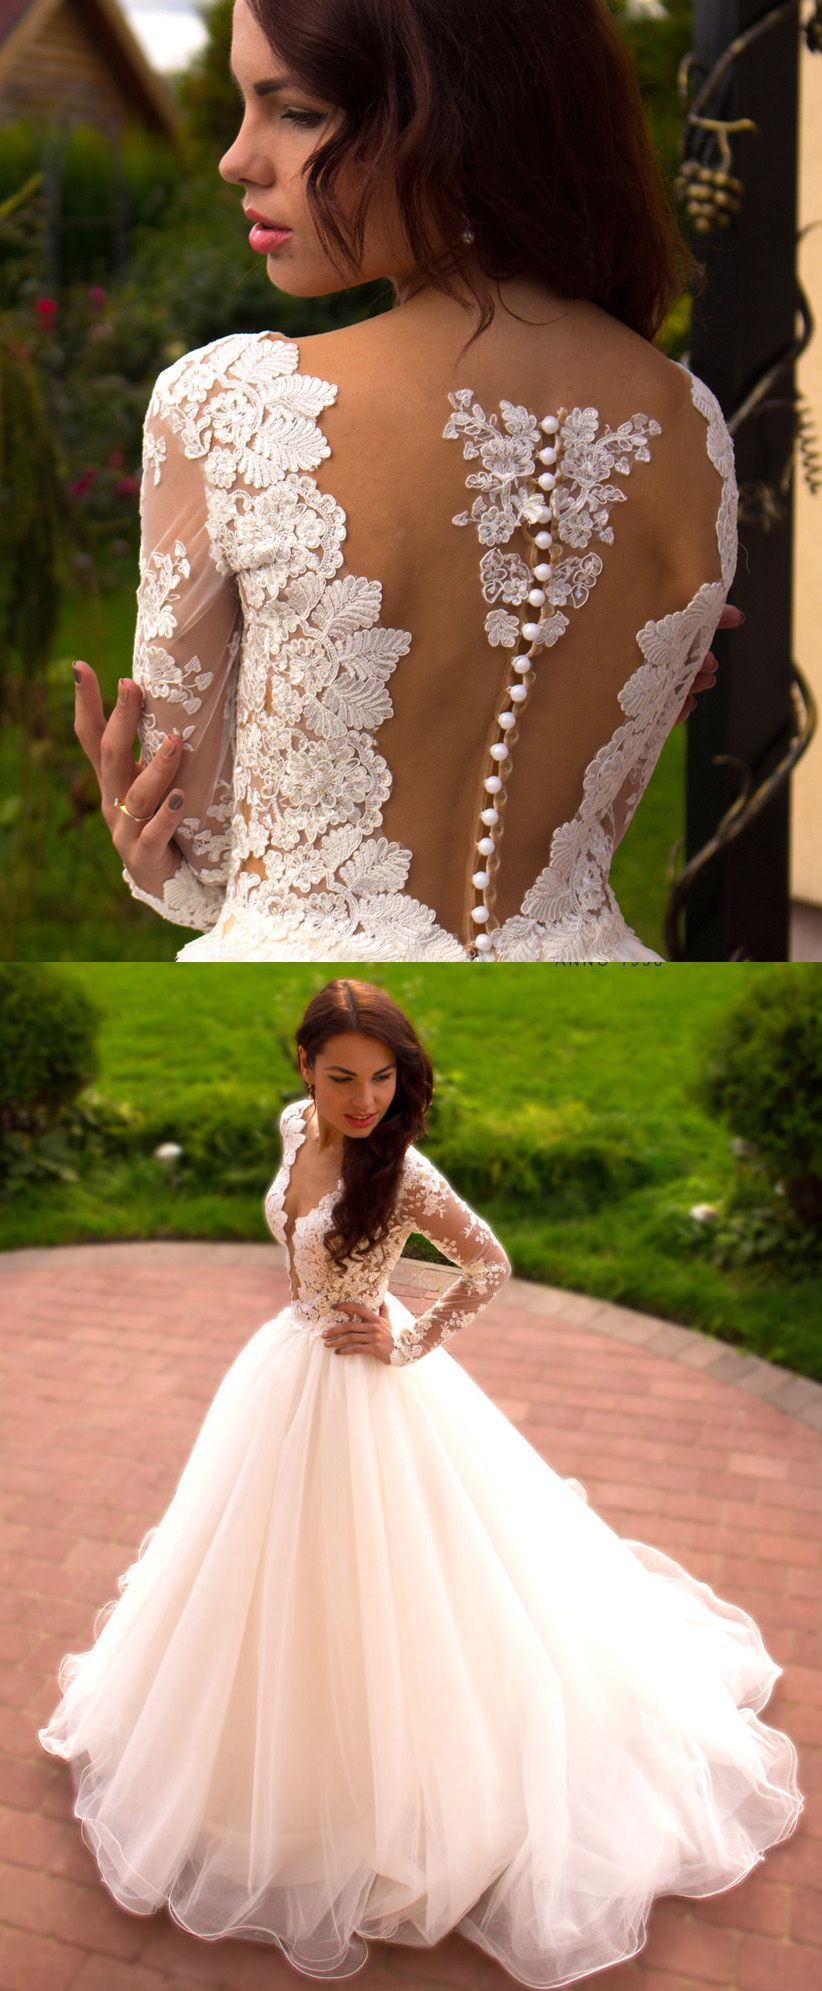 Long sleeve wedding dresses white long sleeve wedding dresses long